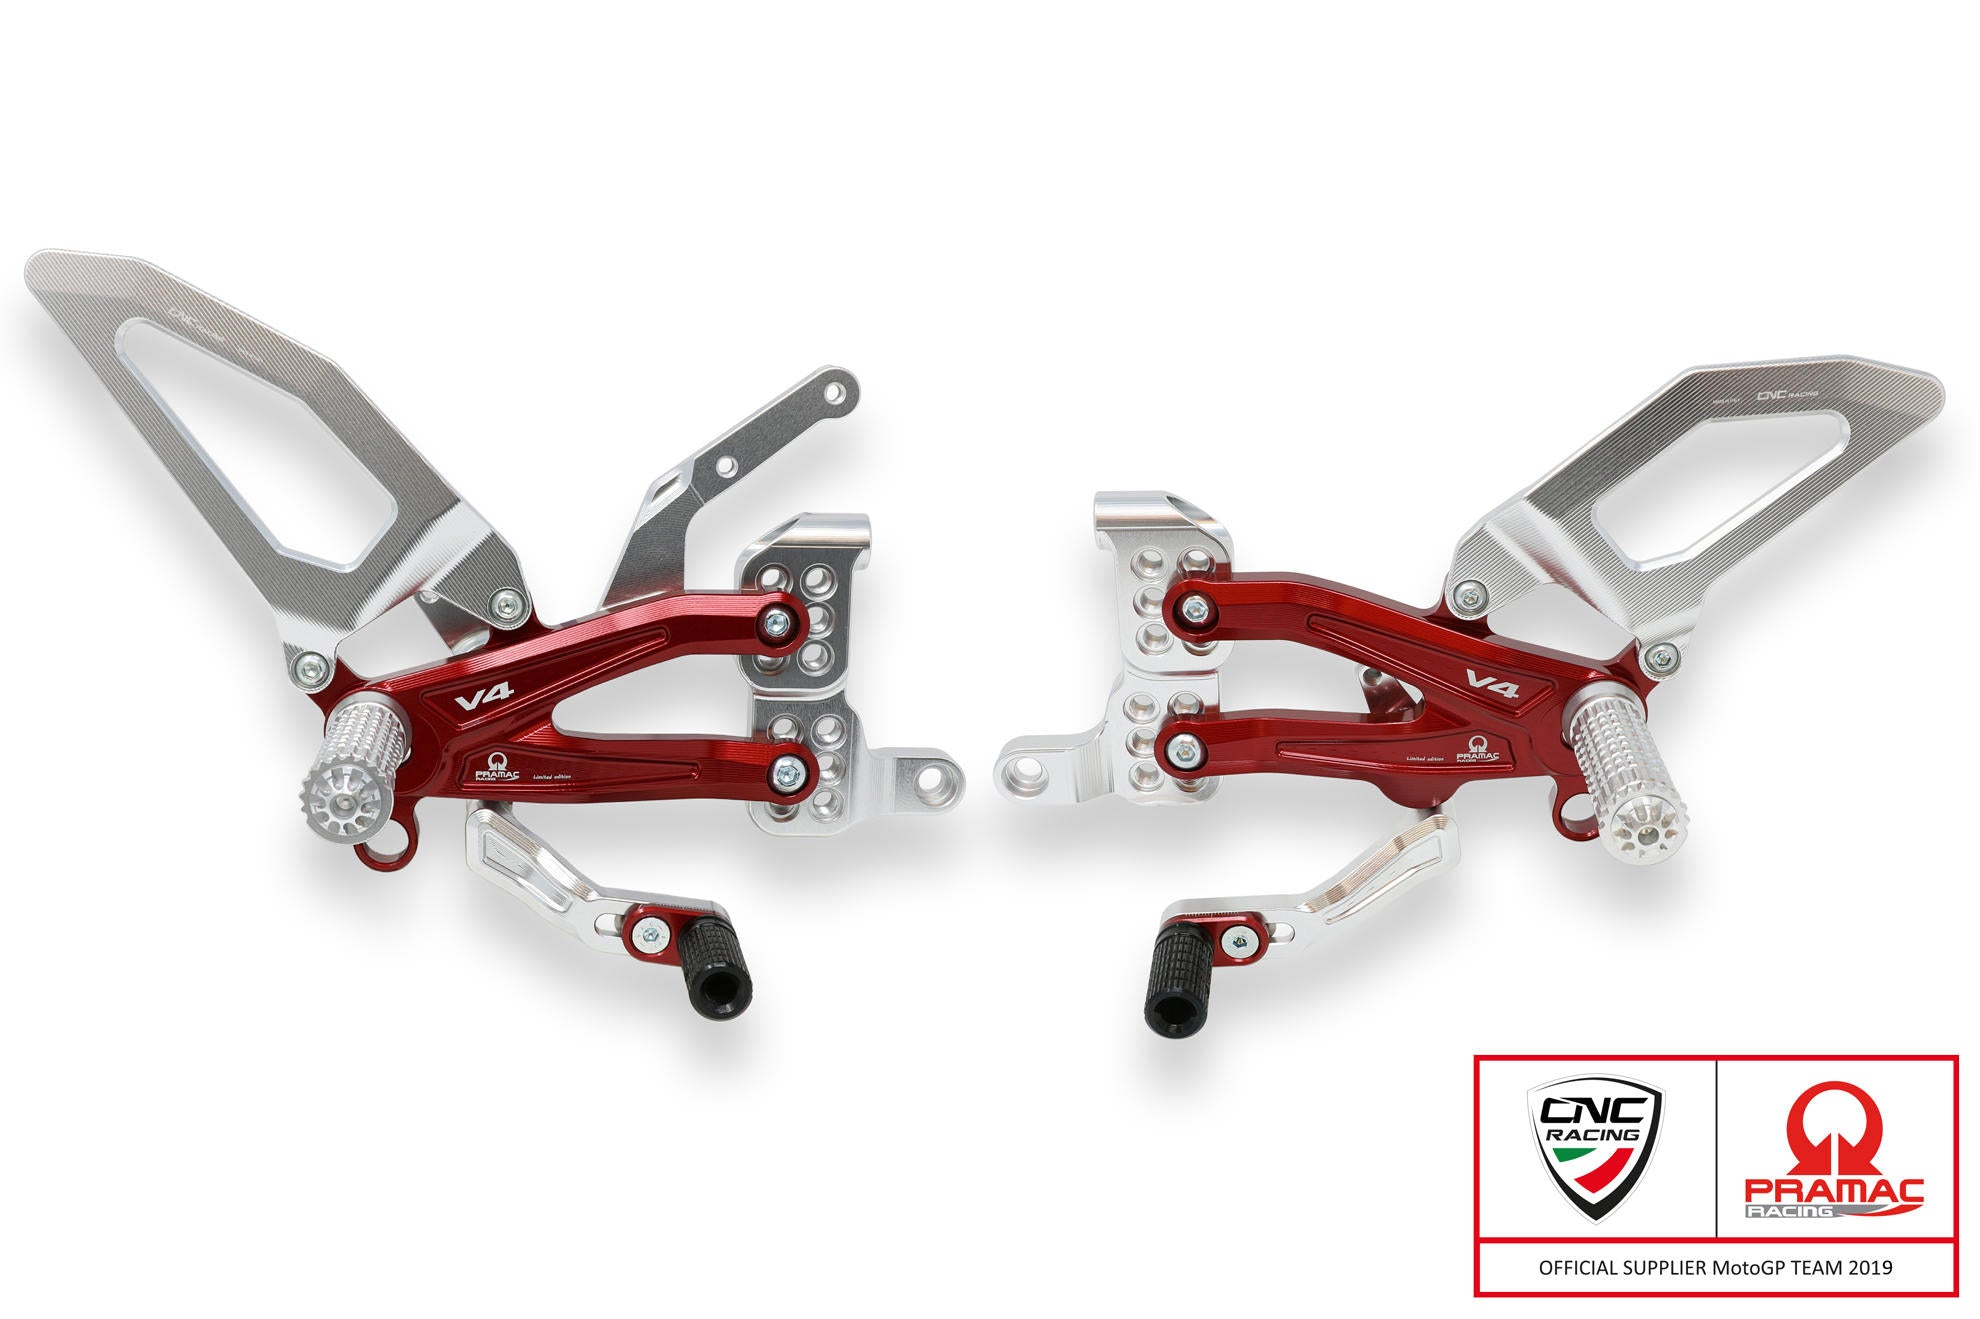 CNC Racing Pramac Adjustable Easy Rearsets - Panigale V4/S, Rearsets, CNC Racing - Averys Motorcycles